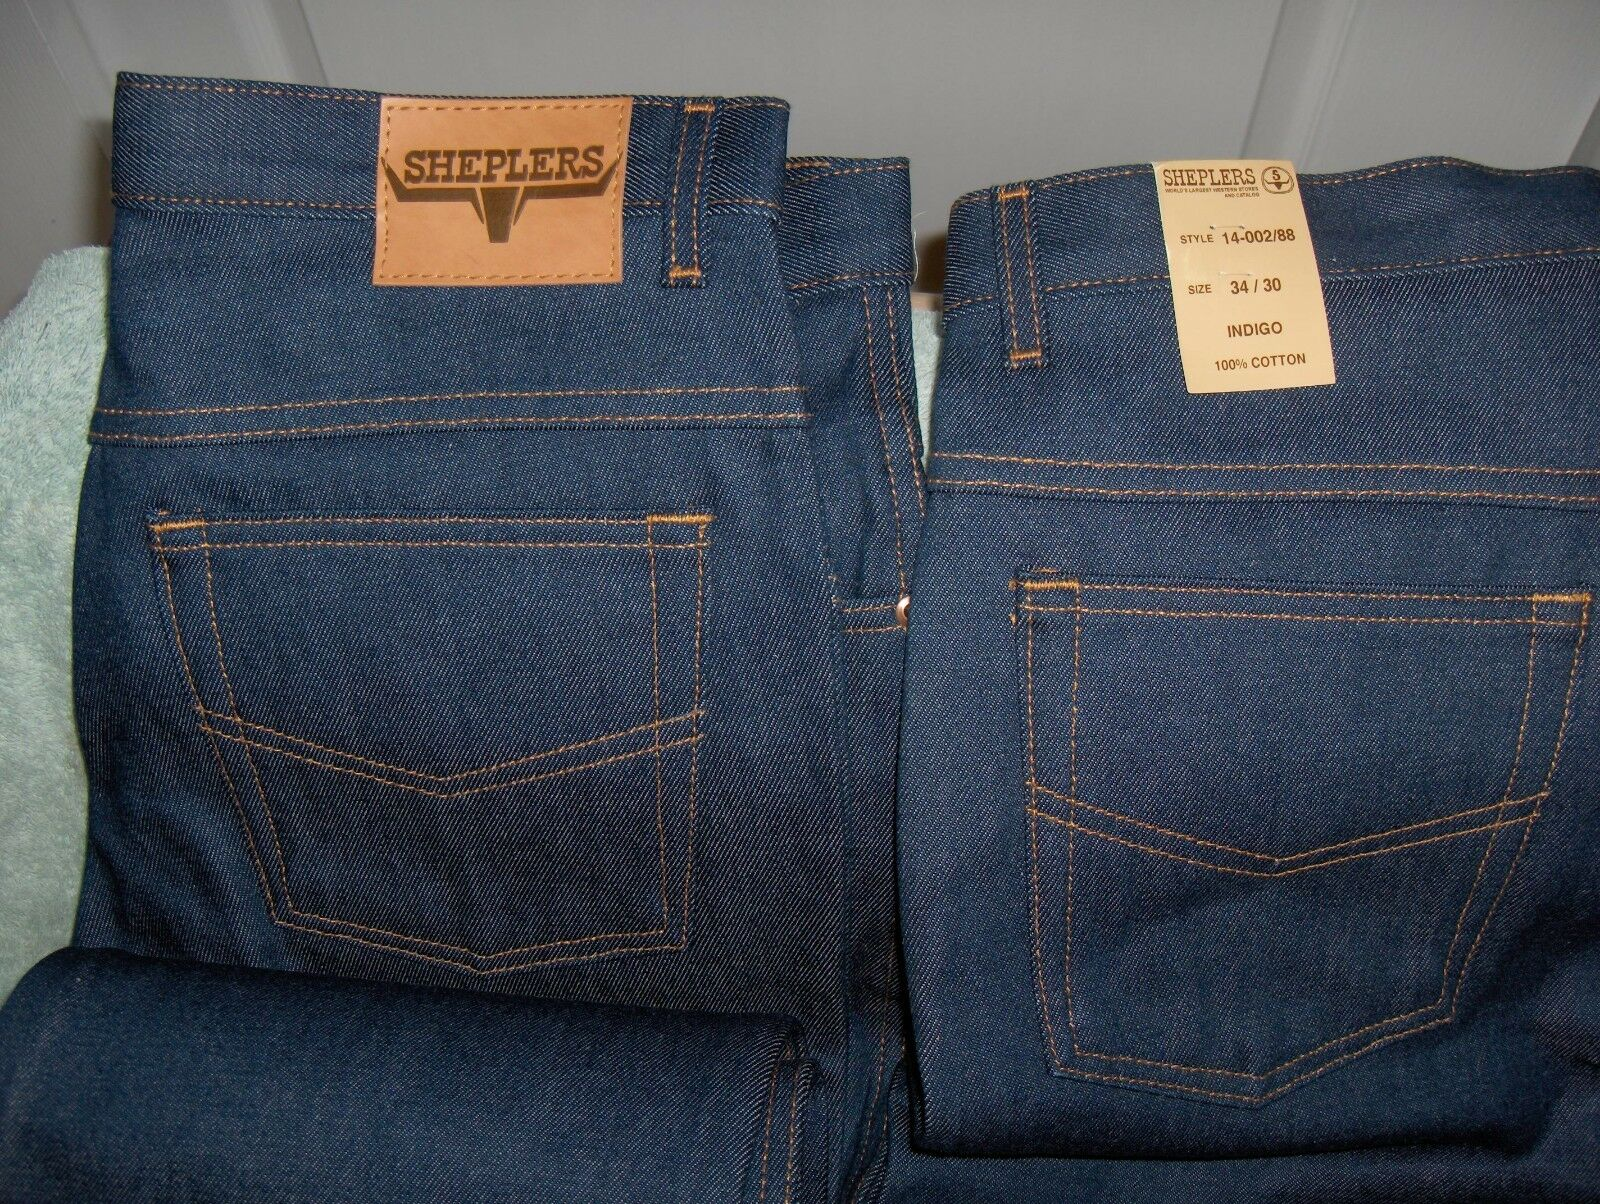 Lot of 2 Sheplers 100 % Cotton INIGO Heavy Duty bluee Jeans 34 X 30 New with Tags